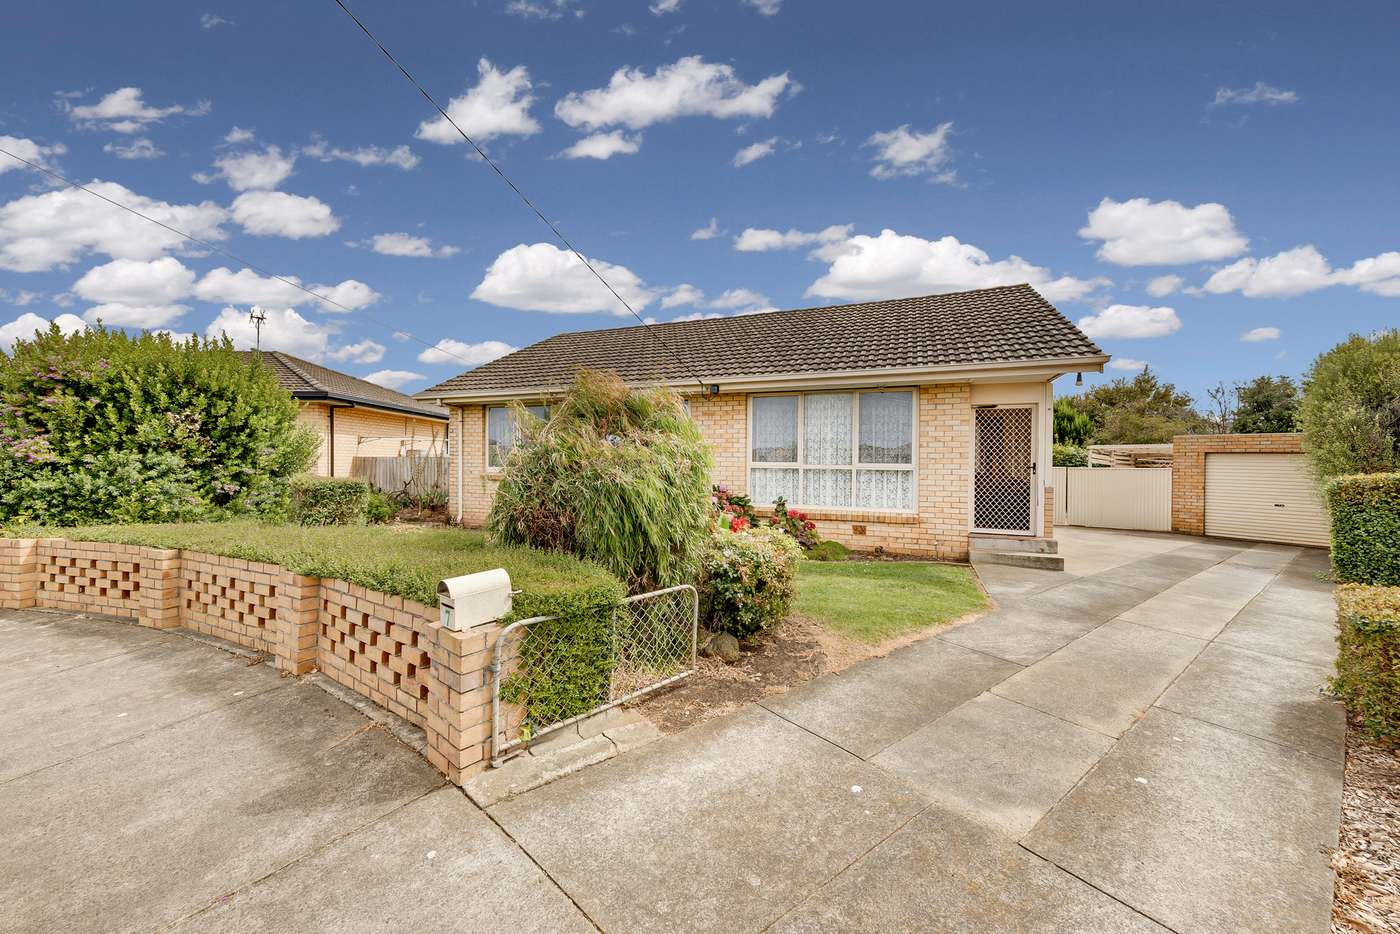 Main view of Homely house listing, 7 Lawson Court, Warrnambool VIC 3280